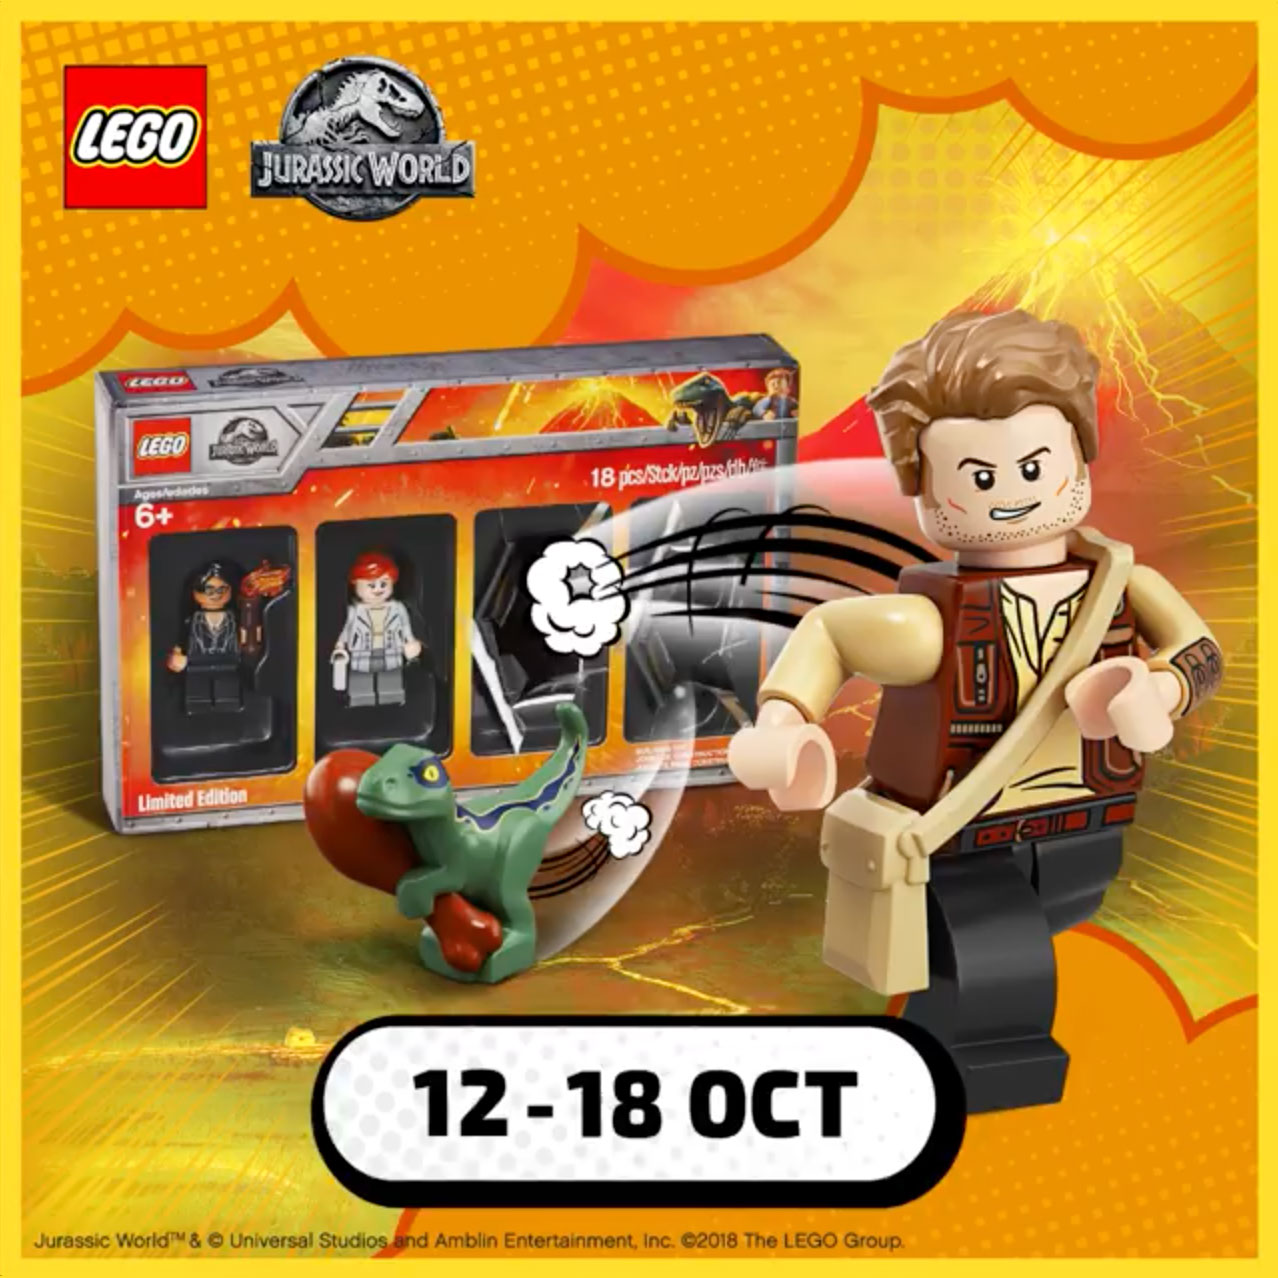 LEGO-bricktober-2018-jurassic world